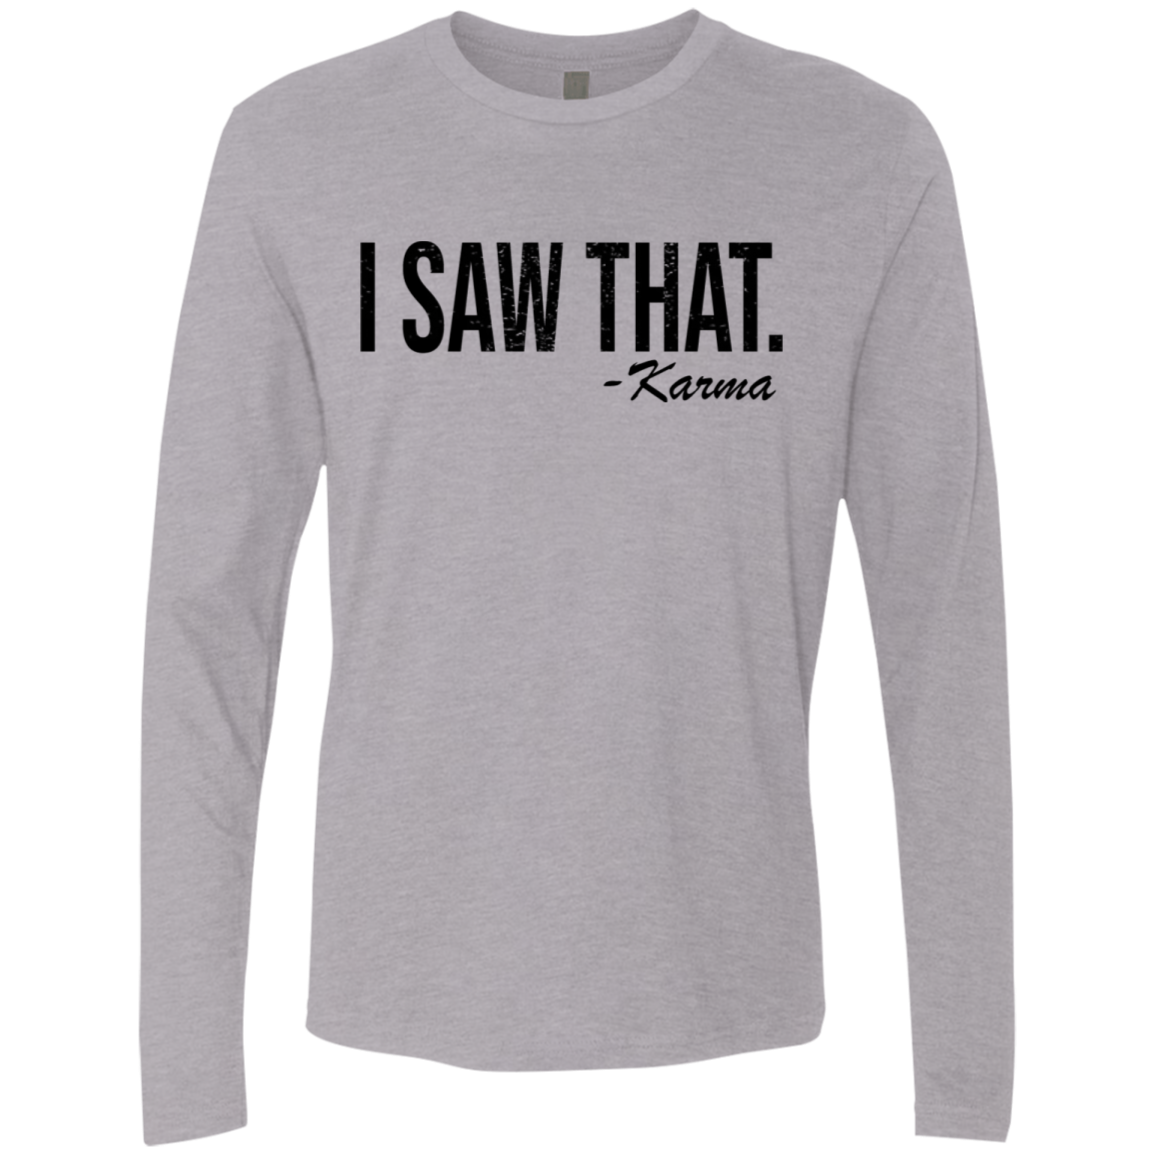 I Saw That - Karma Men's Long Sleeve Tee